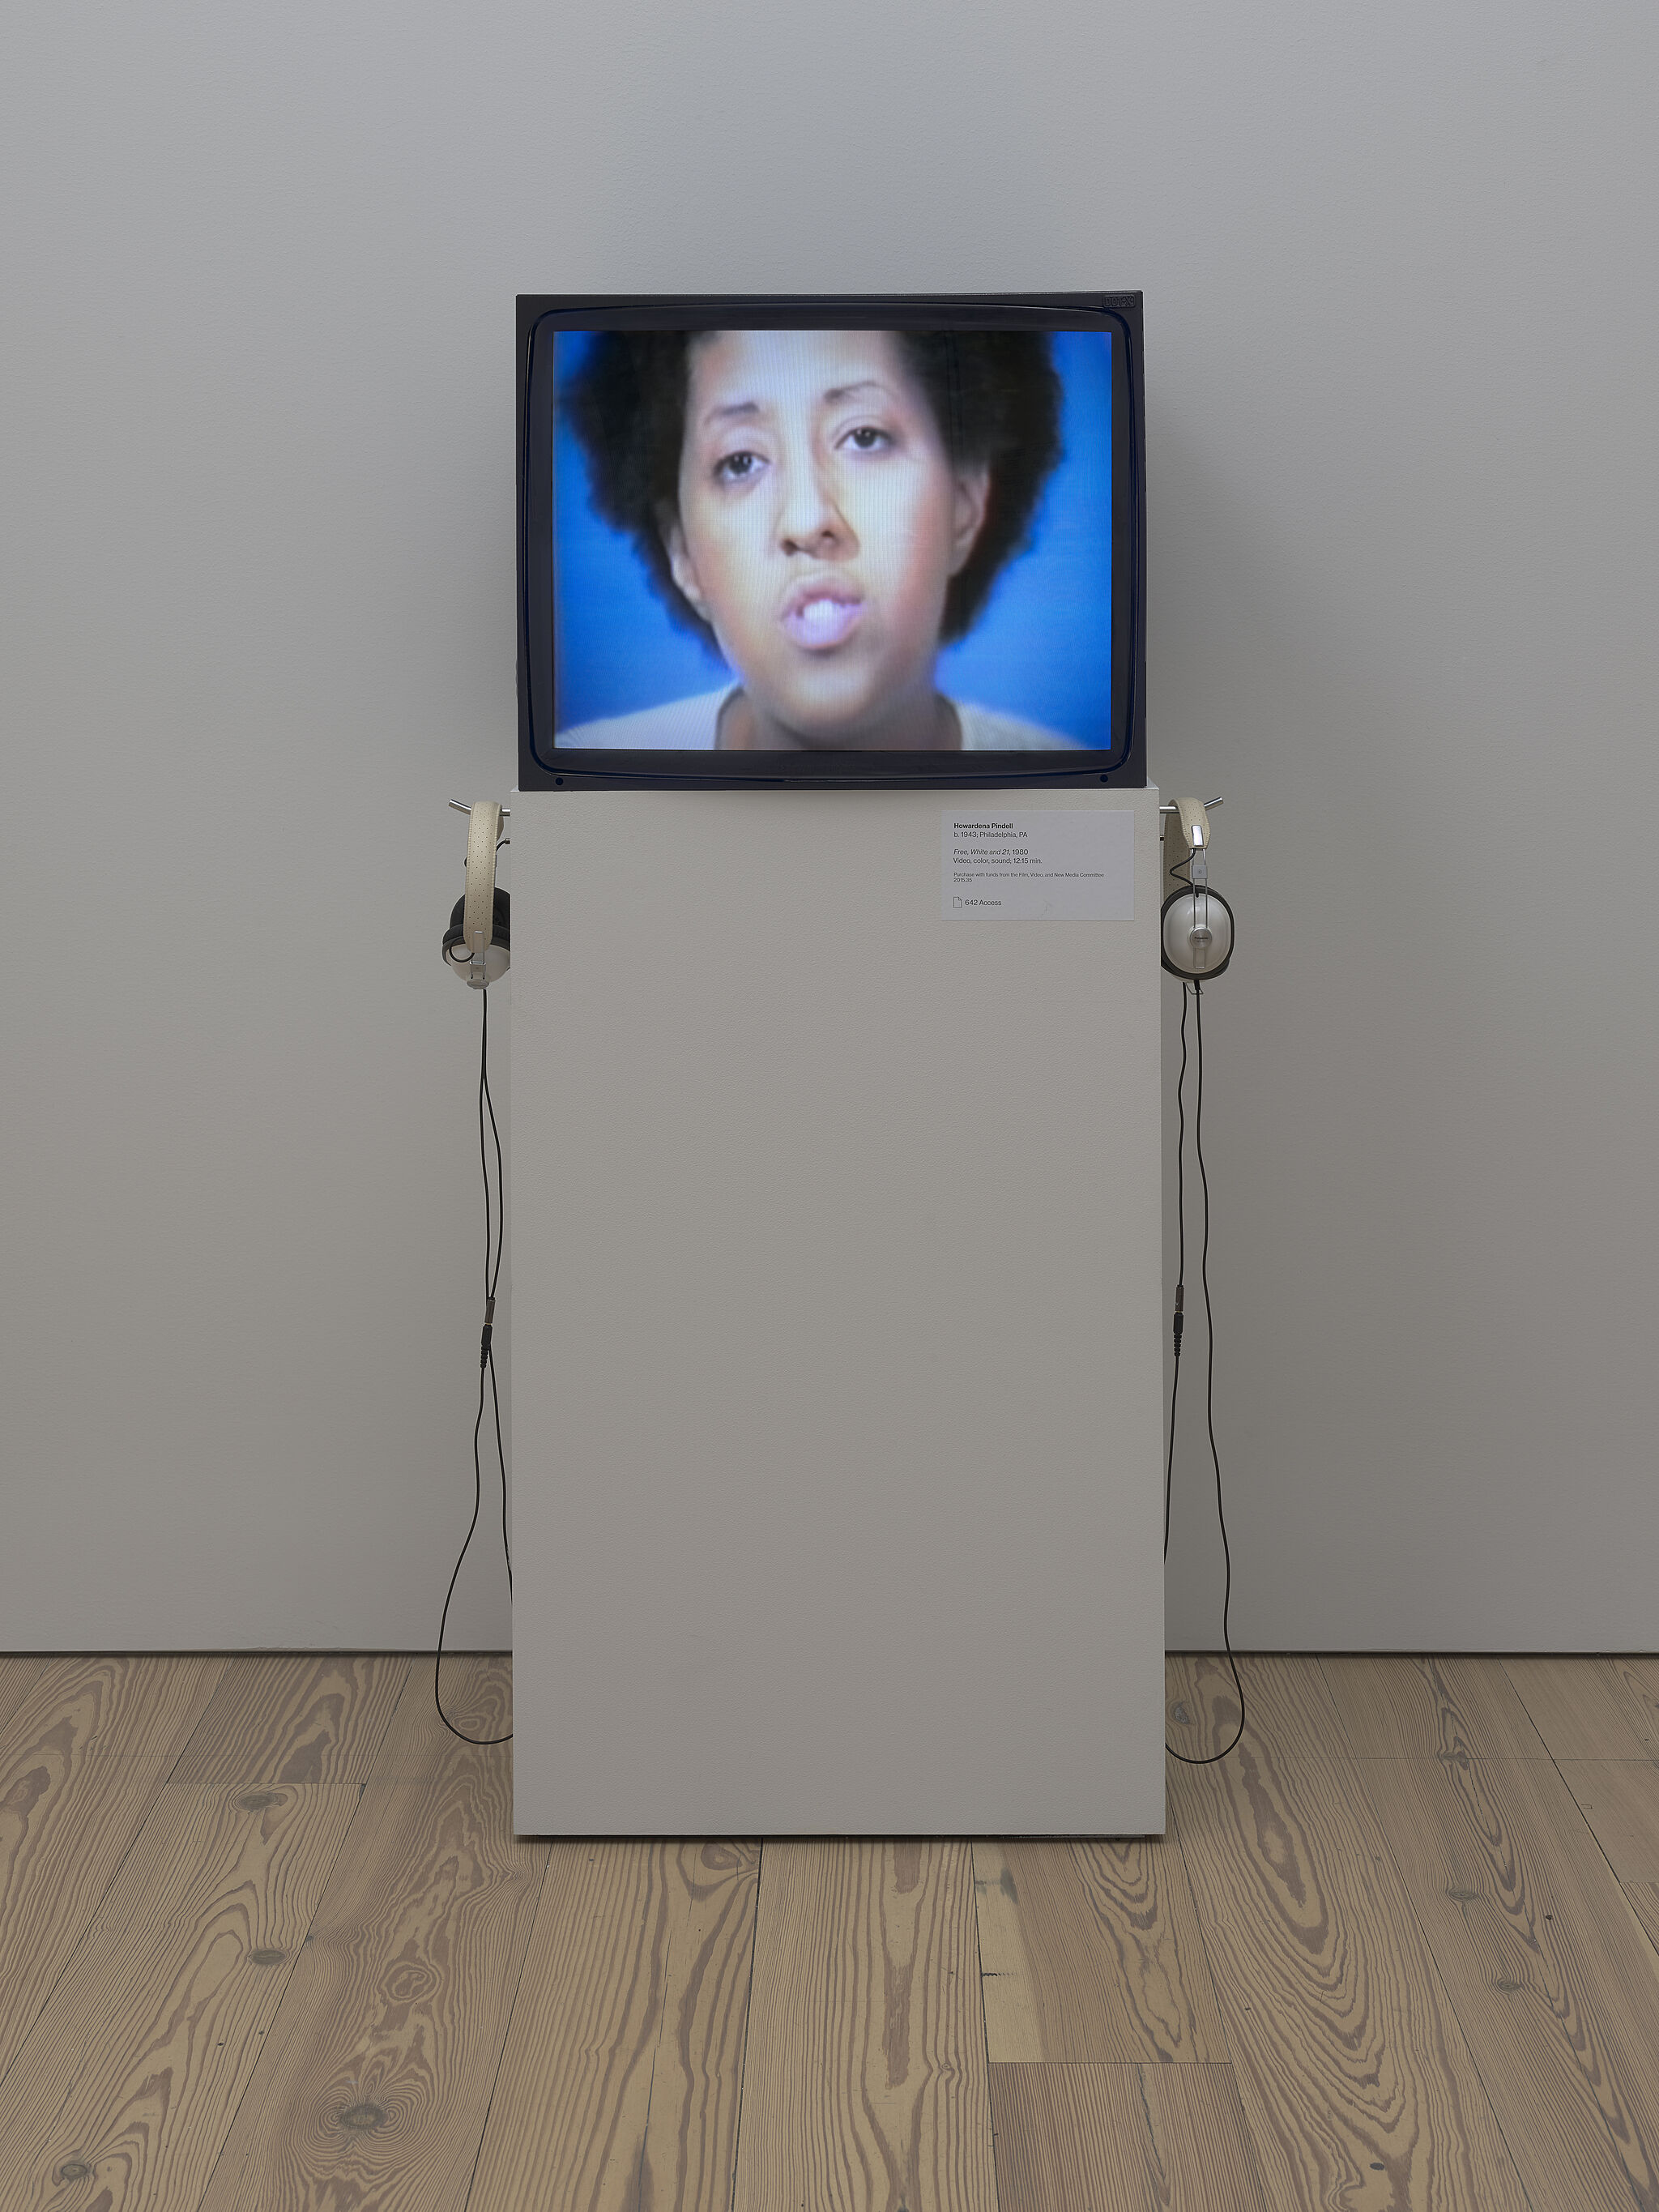 Image of a TV with a still of a woman's face.